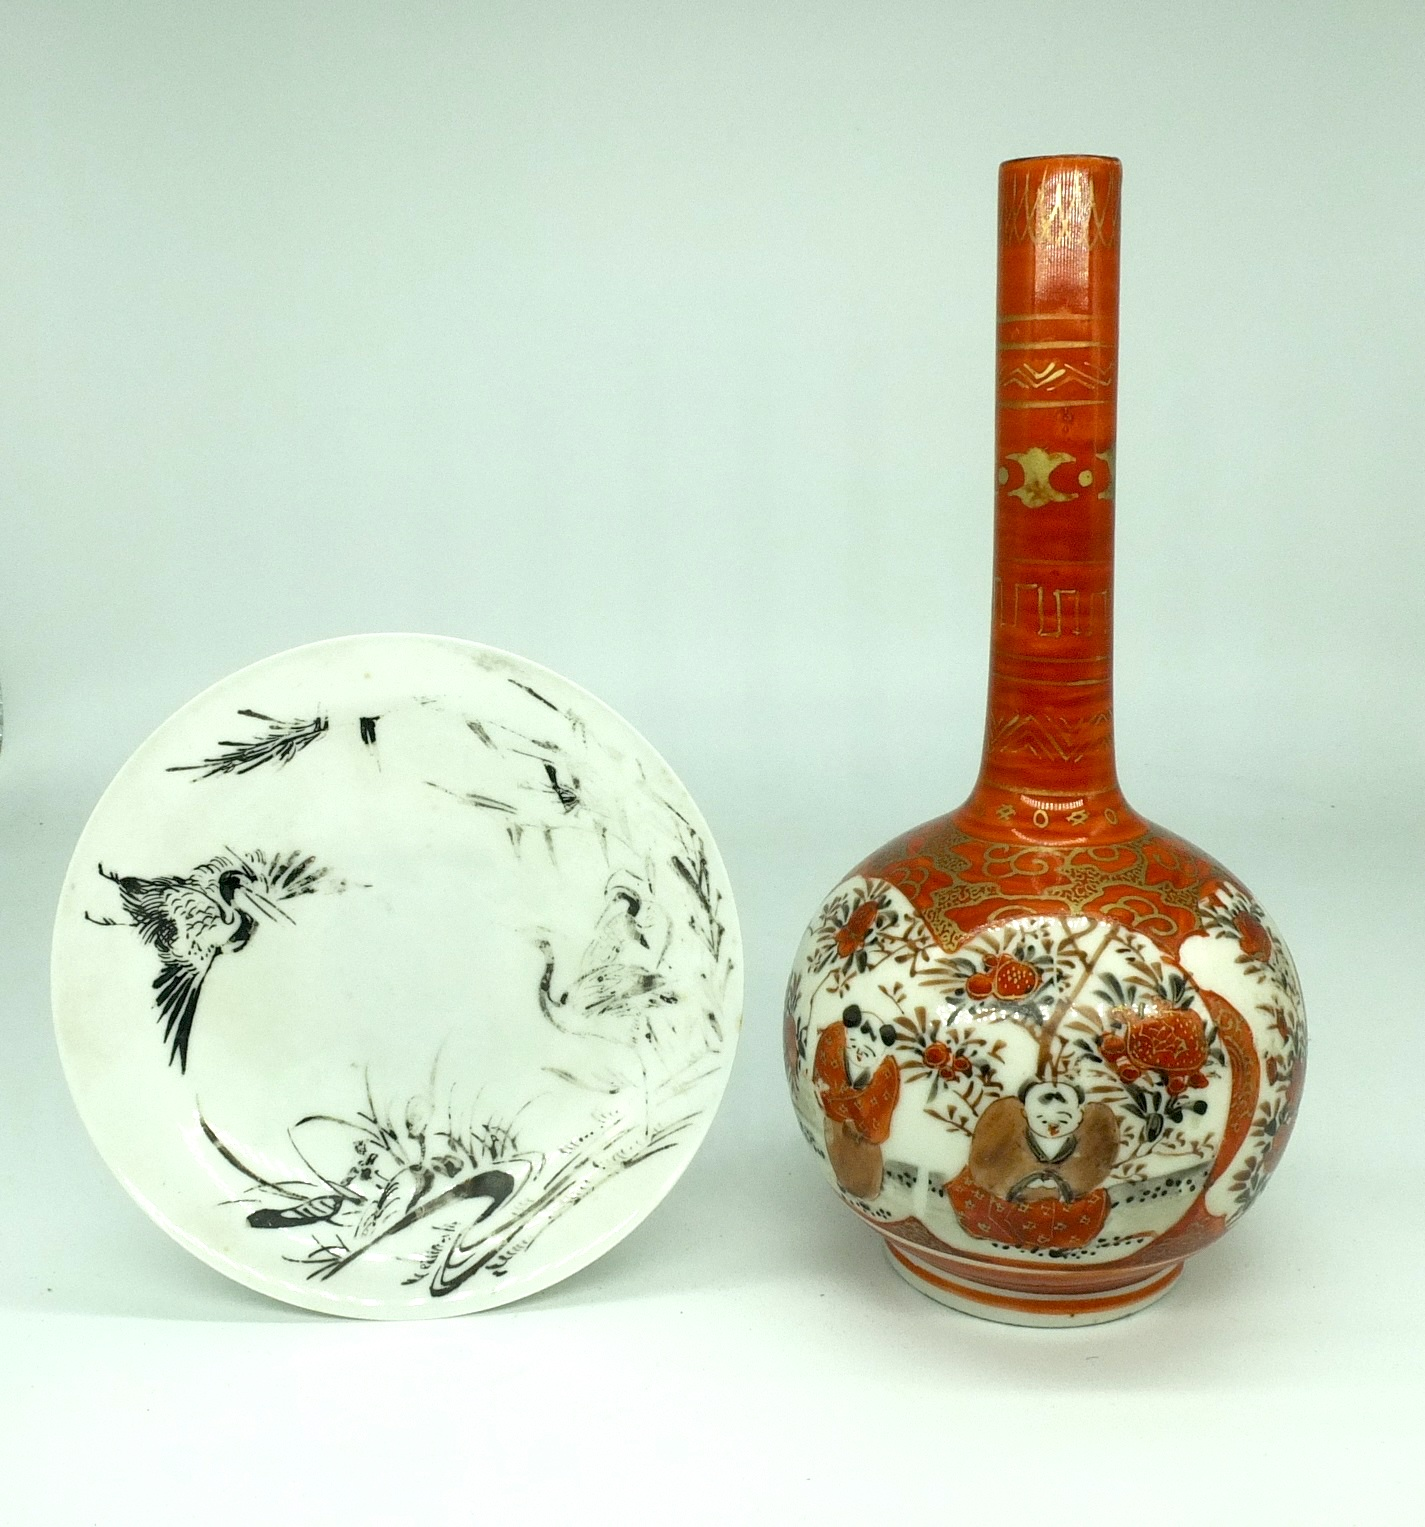 'Japanese Kutani Porcelain Bottle Vase and a Dish'